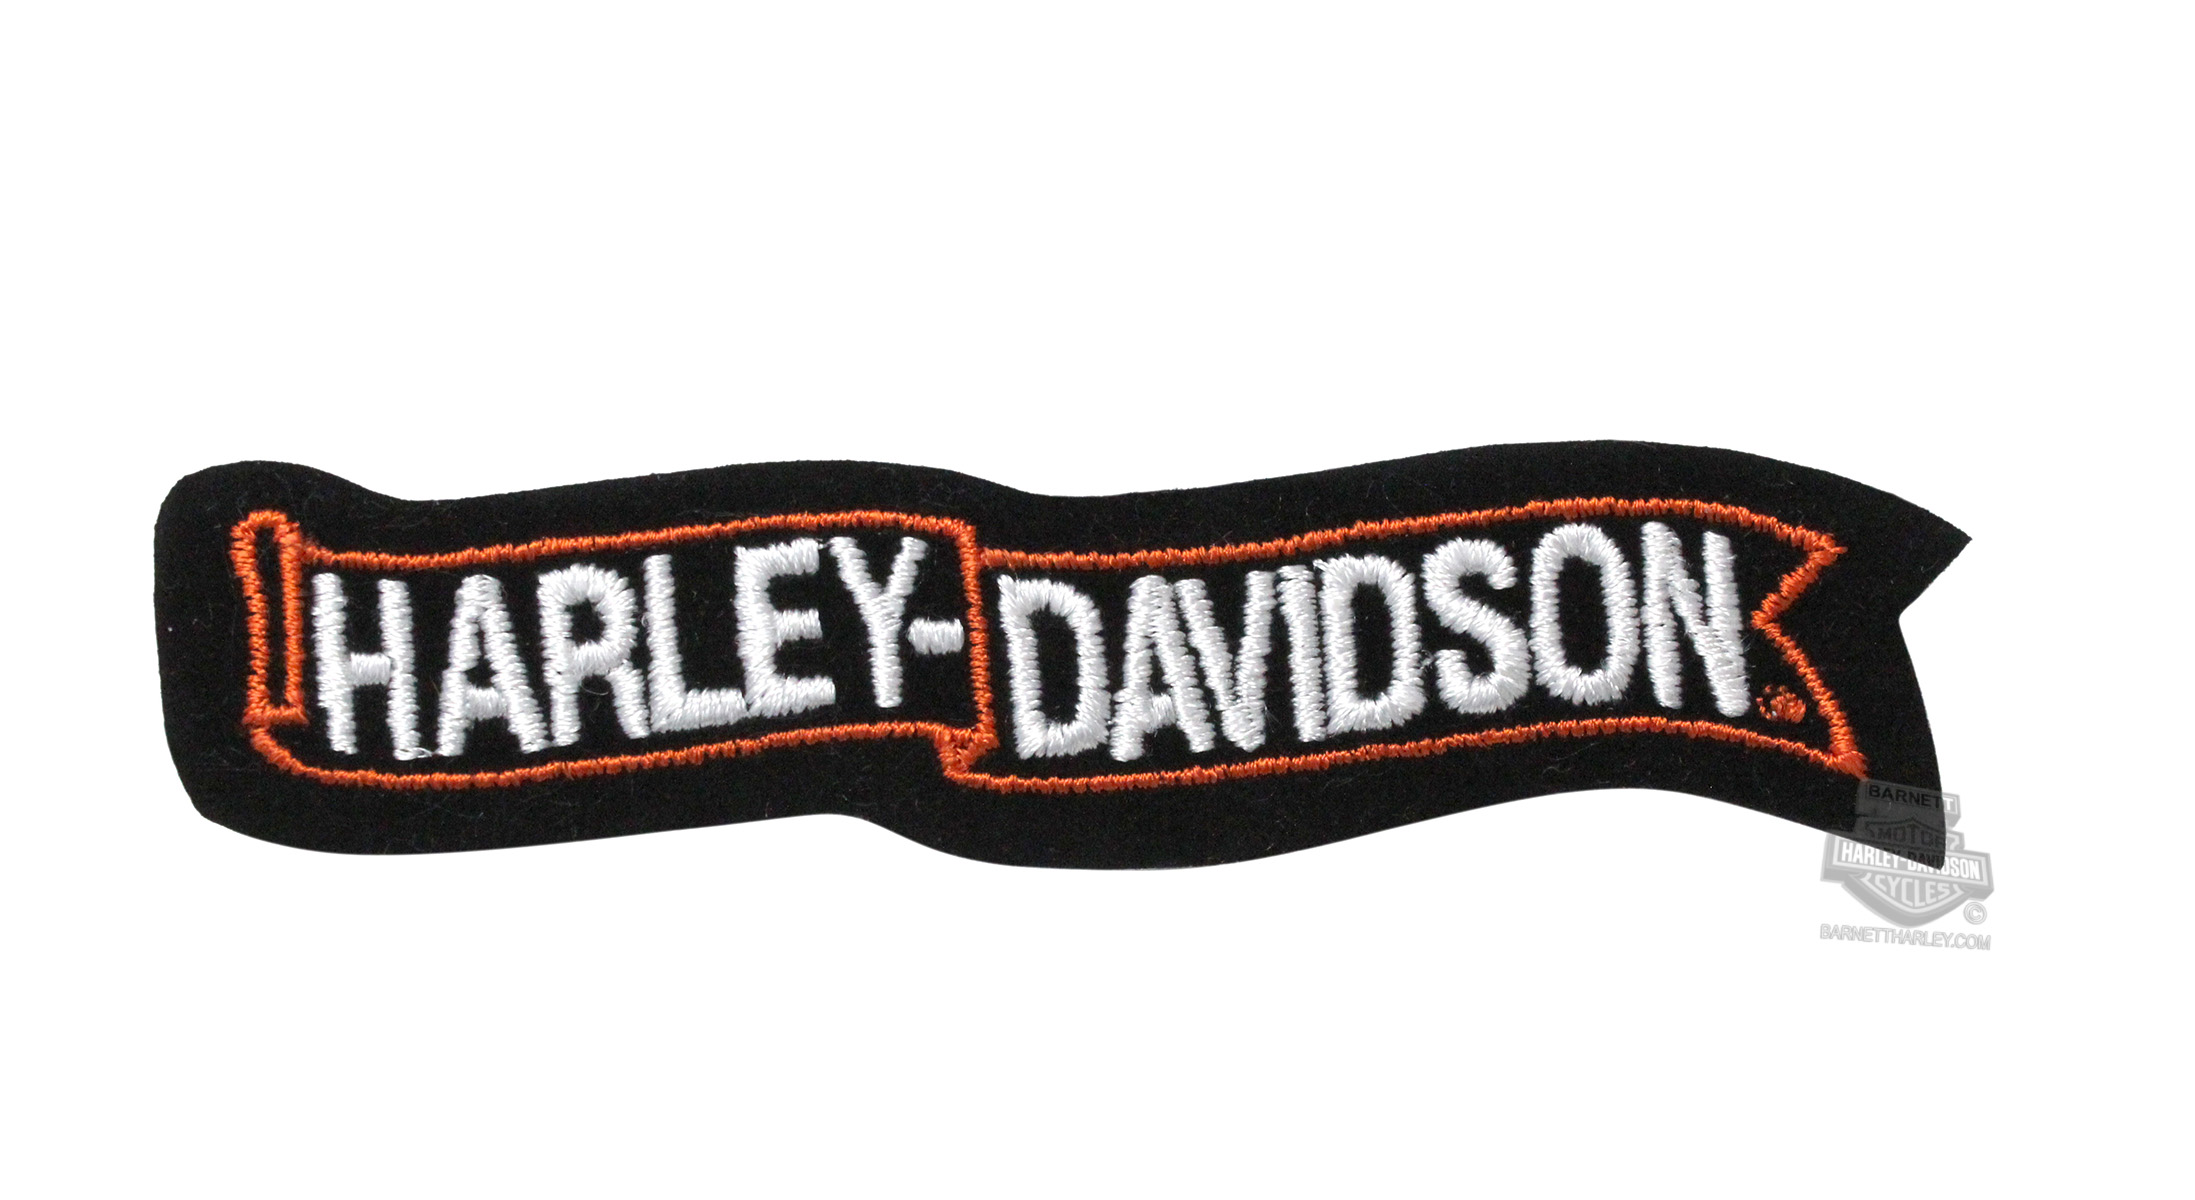 emb303302 - harley-davidson® waving banner small patch - barnett